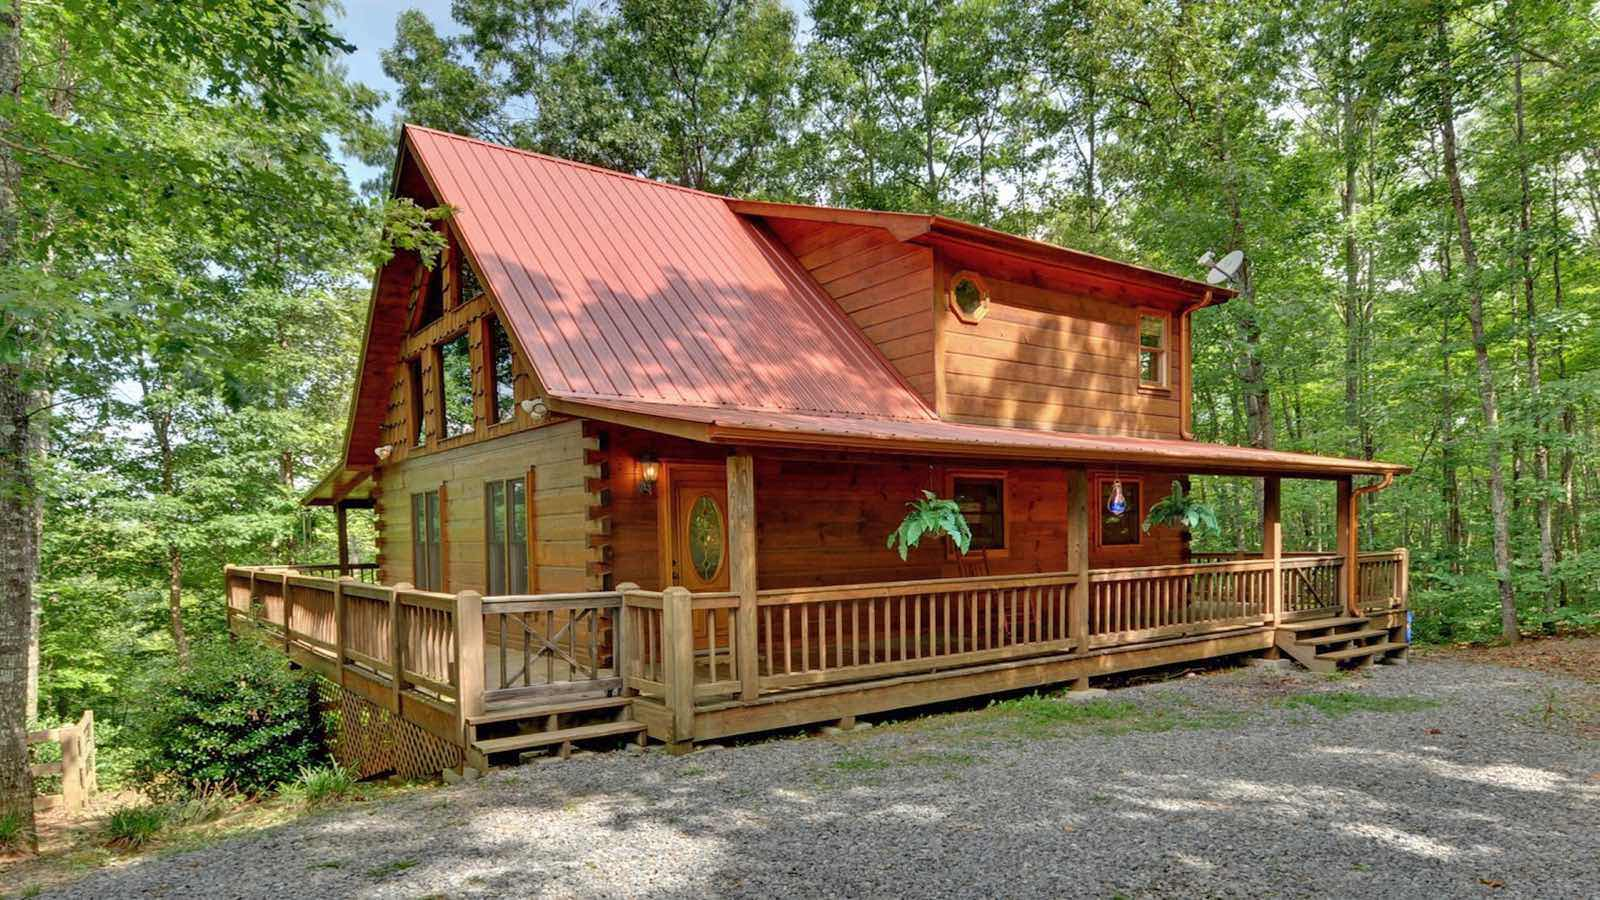 North georgia mountain cabin rentals for Rent a cabin in georgia mountains